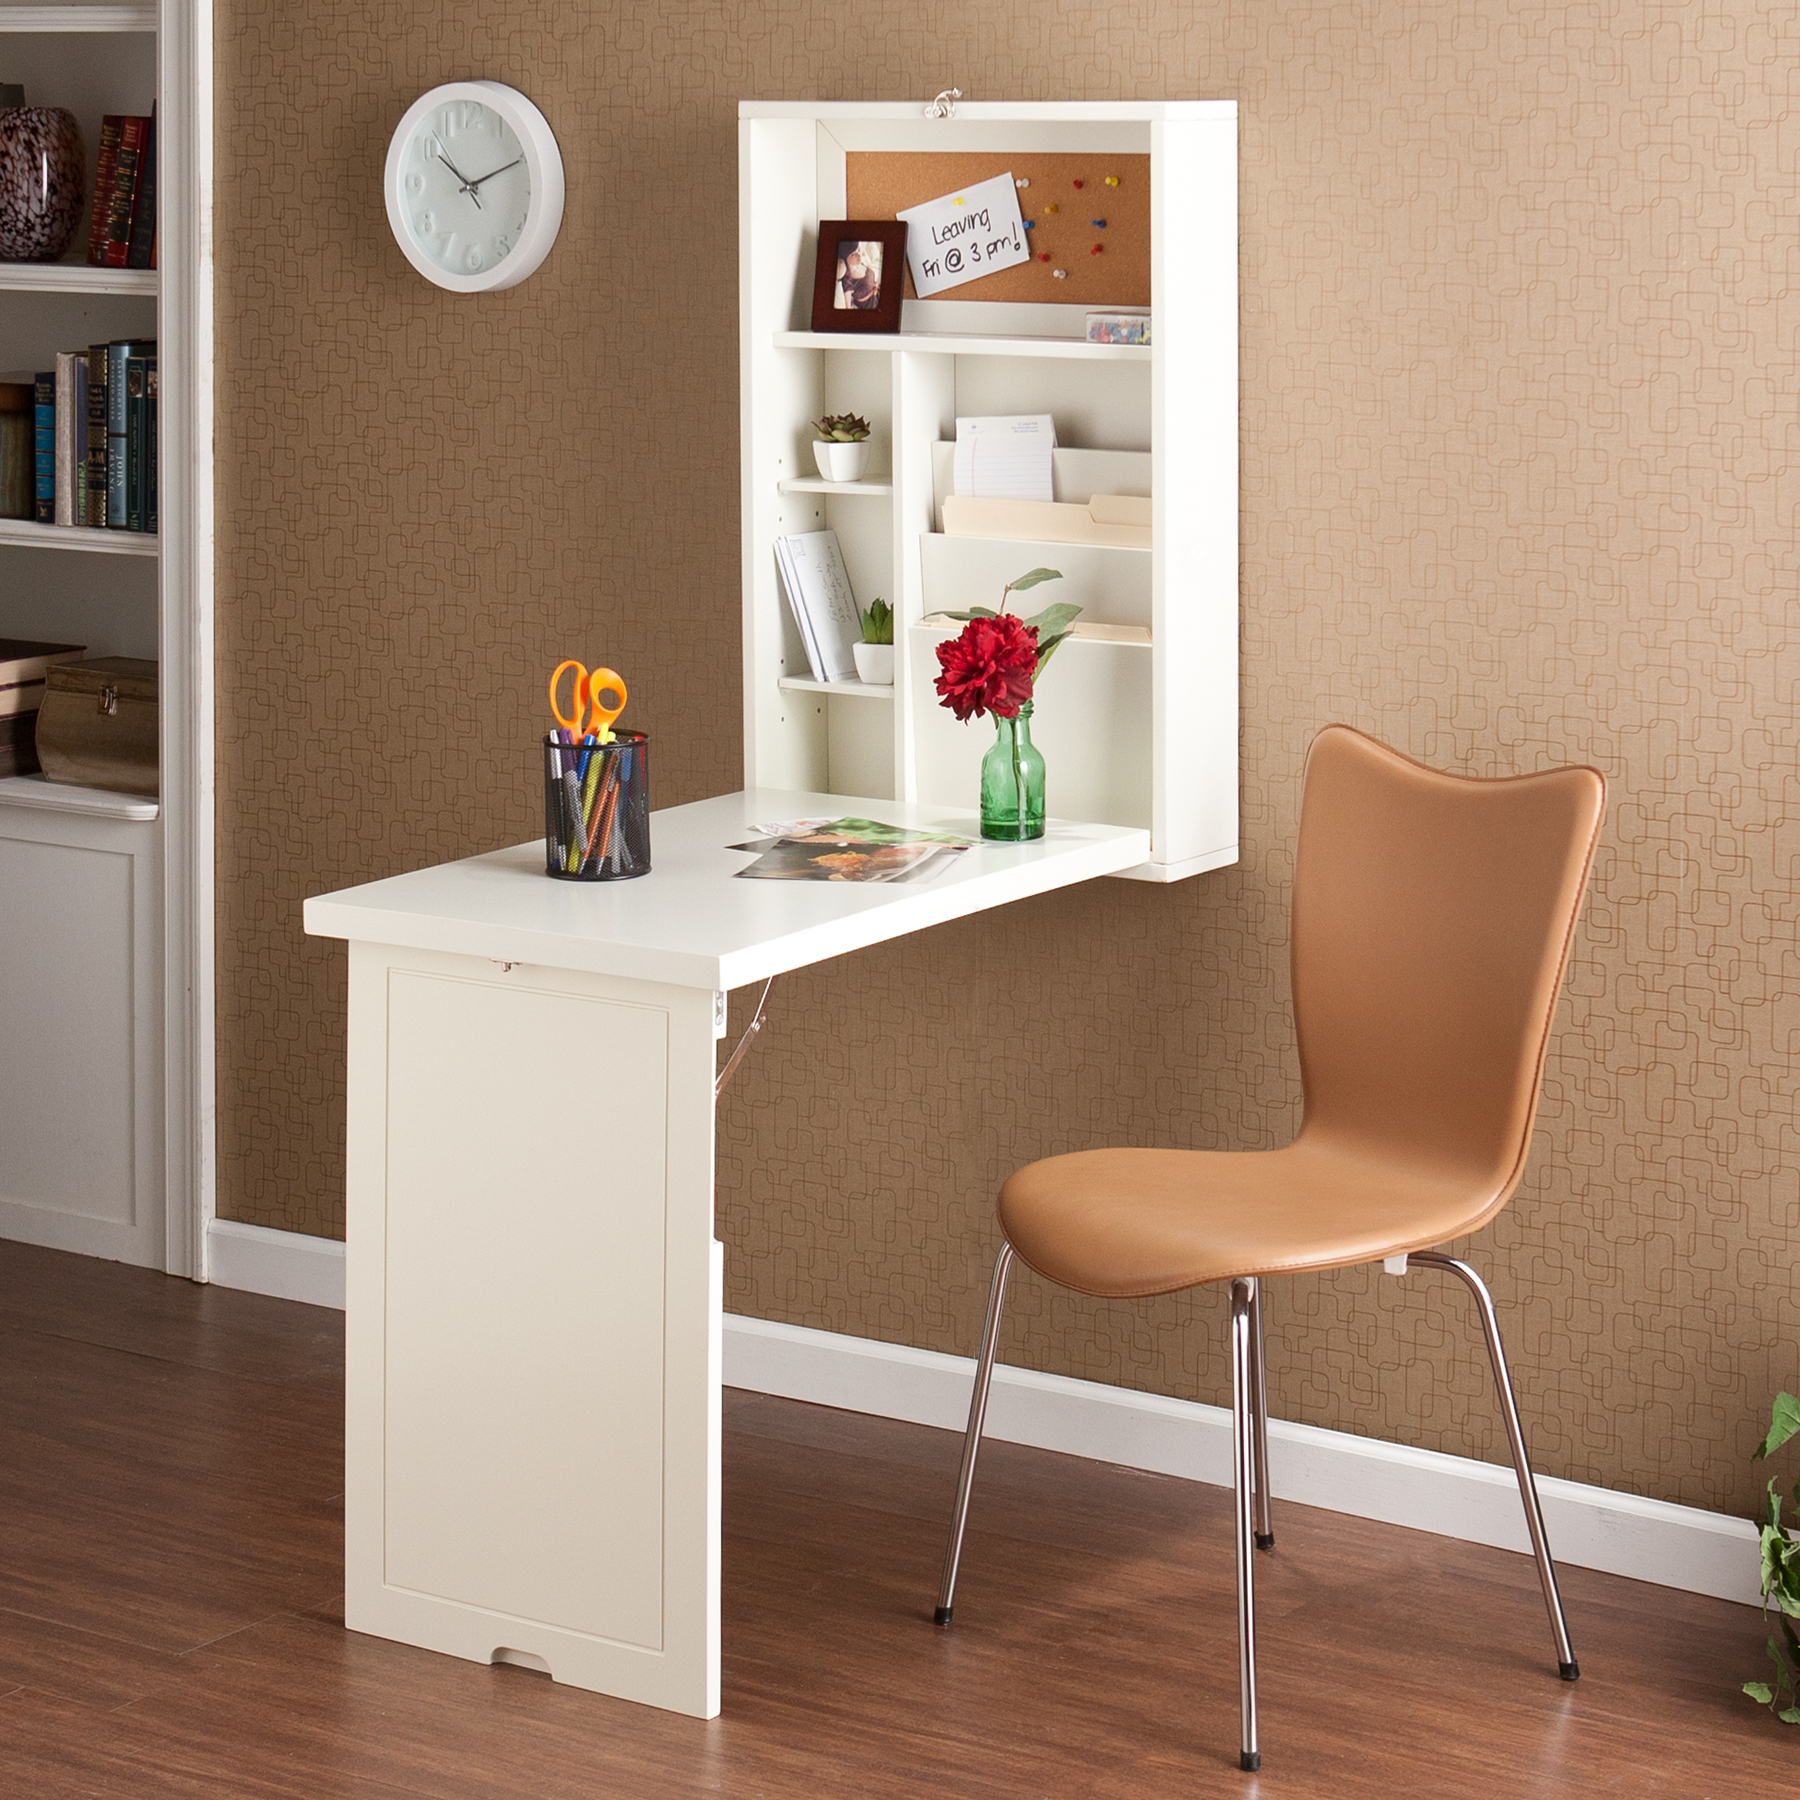 Fold-Out Convertible Desk